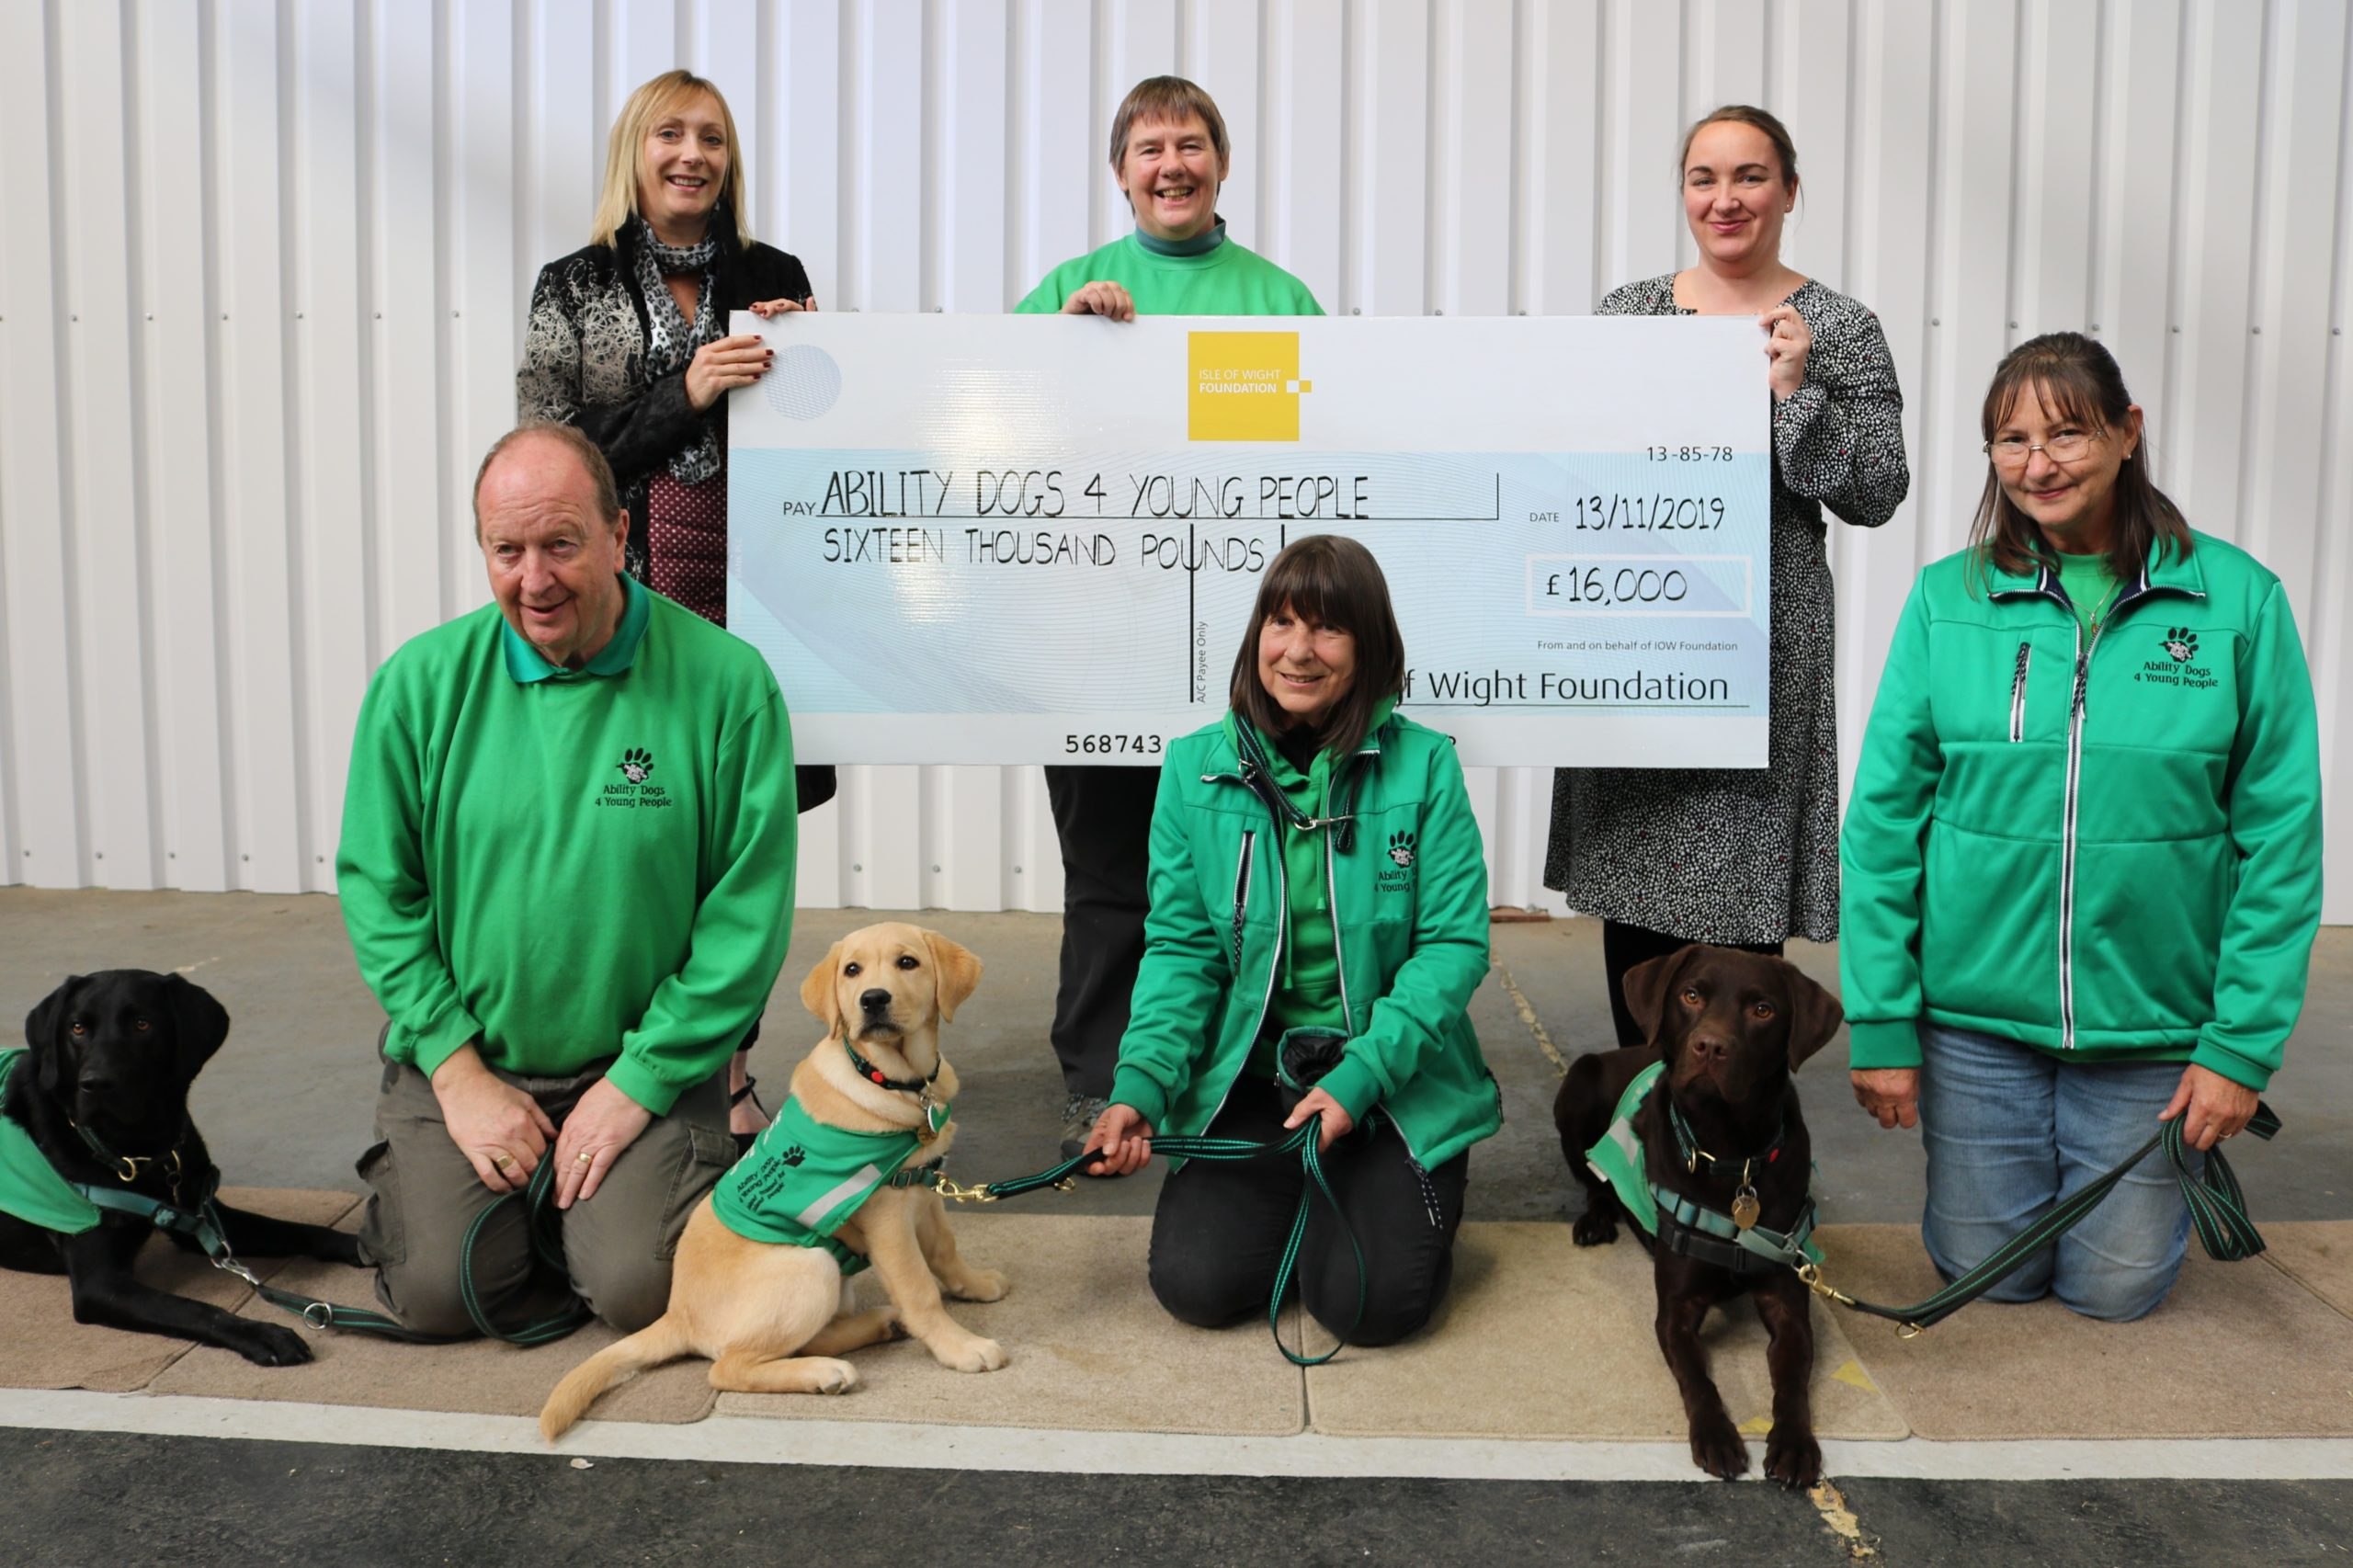 photo showing adults from Island Roads and Ability Dogs for Young People charity with dogs and a large cheque